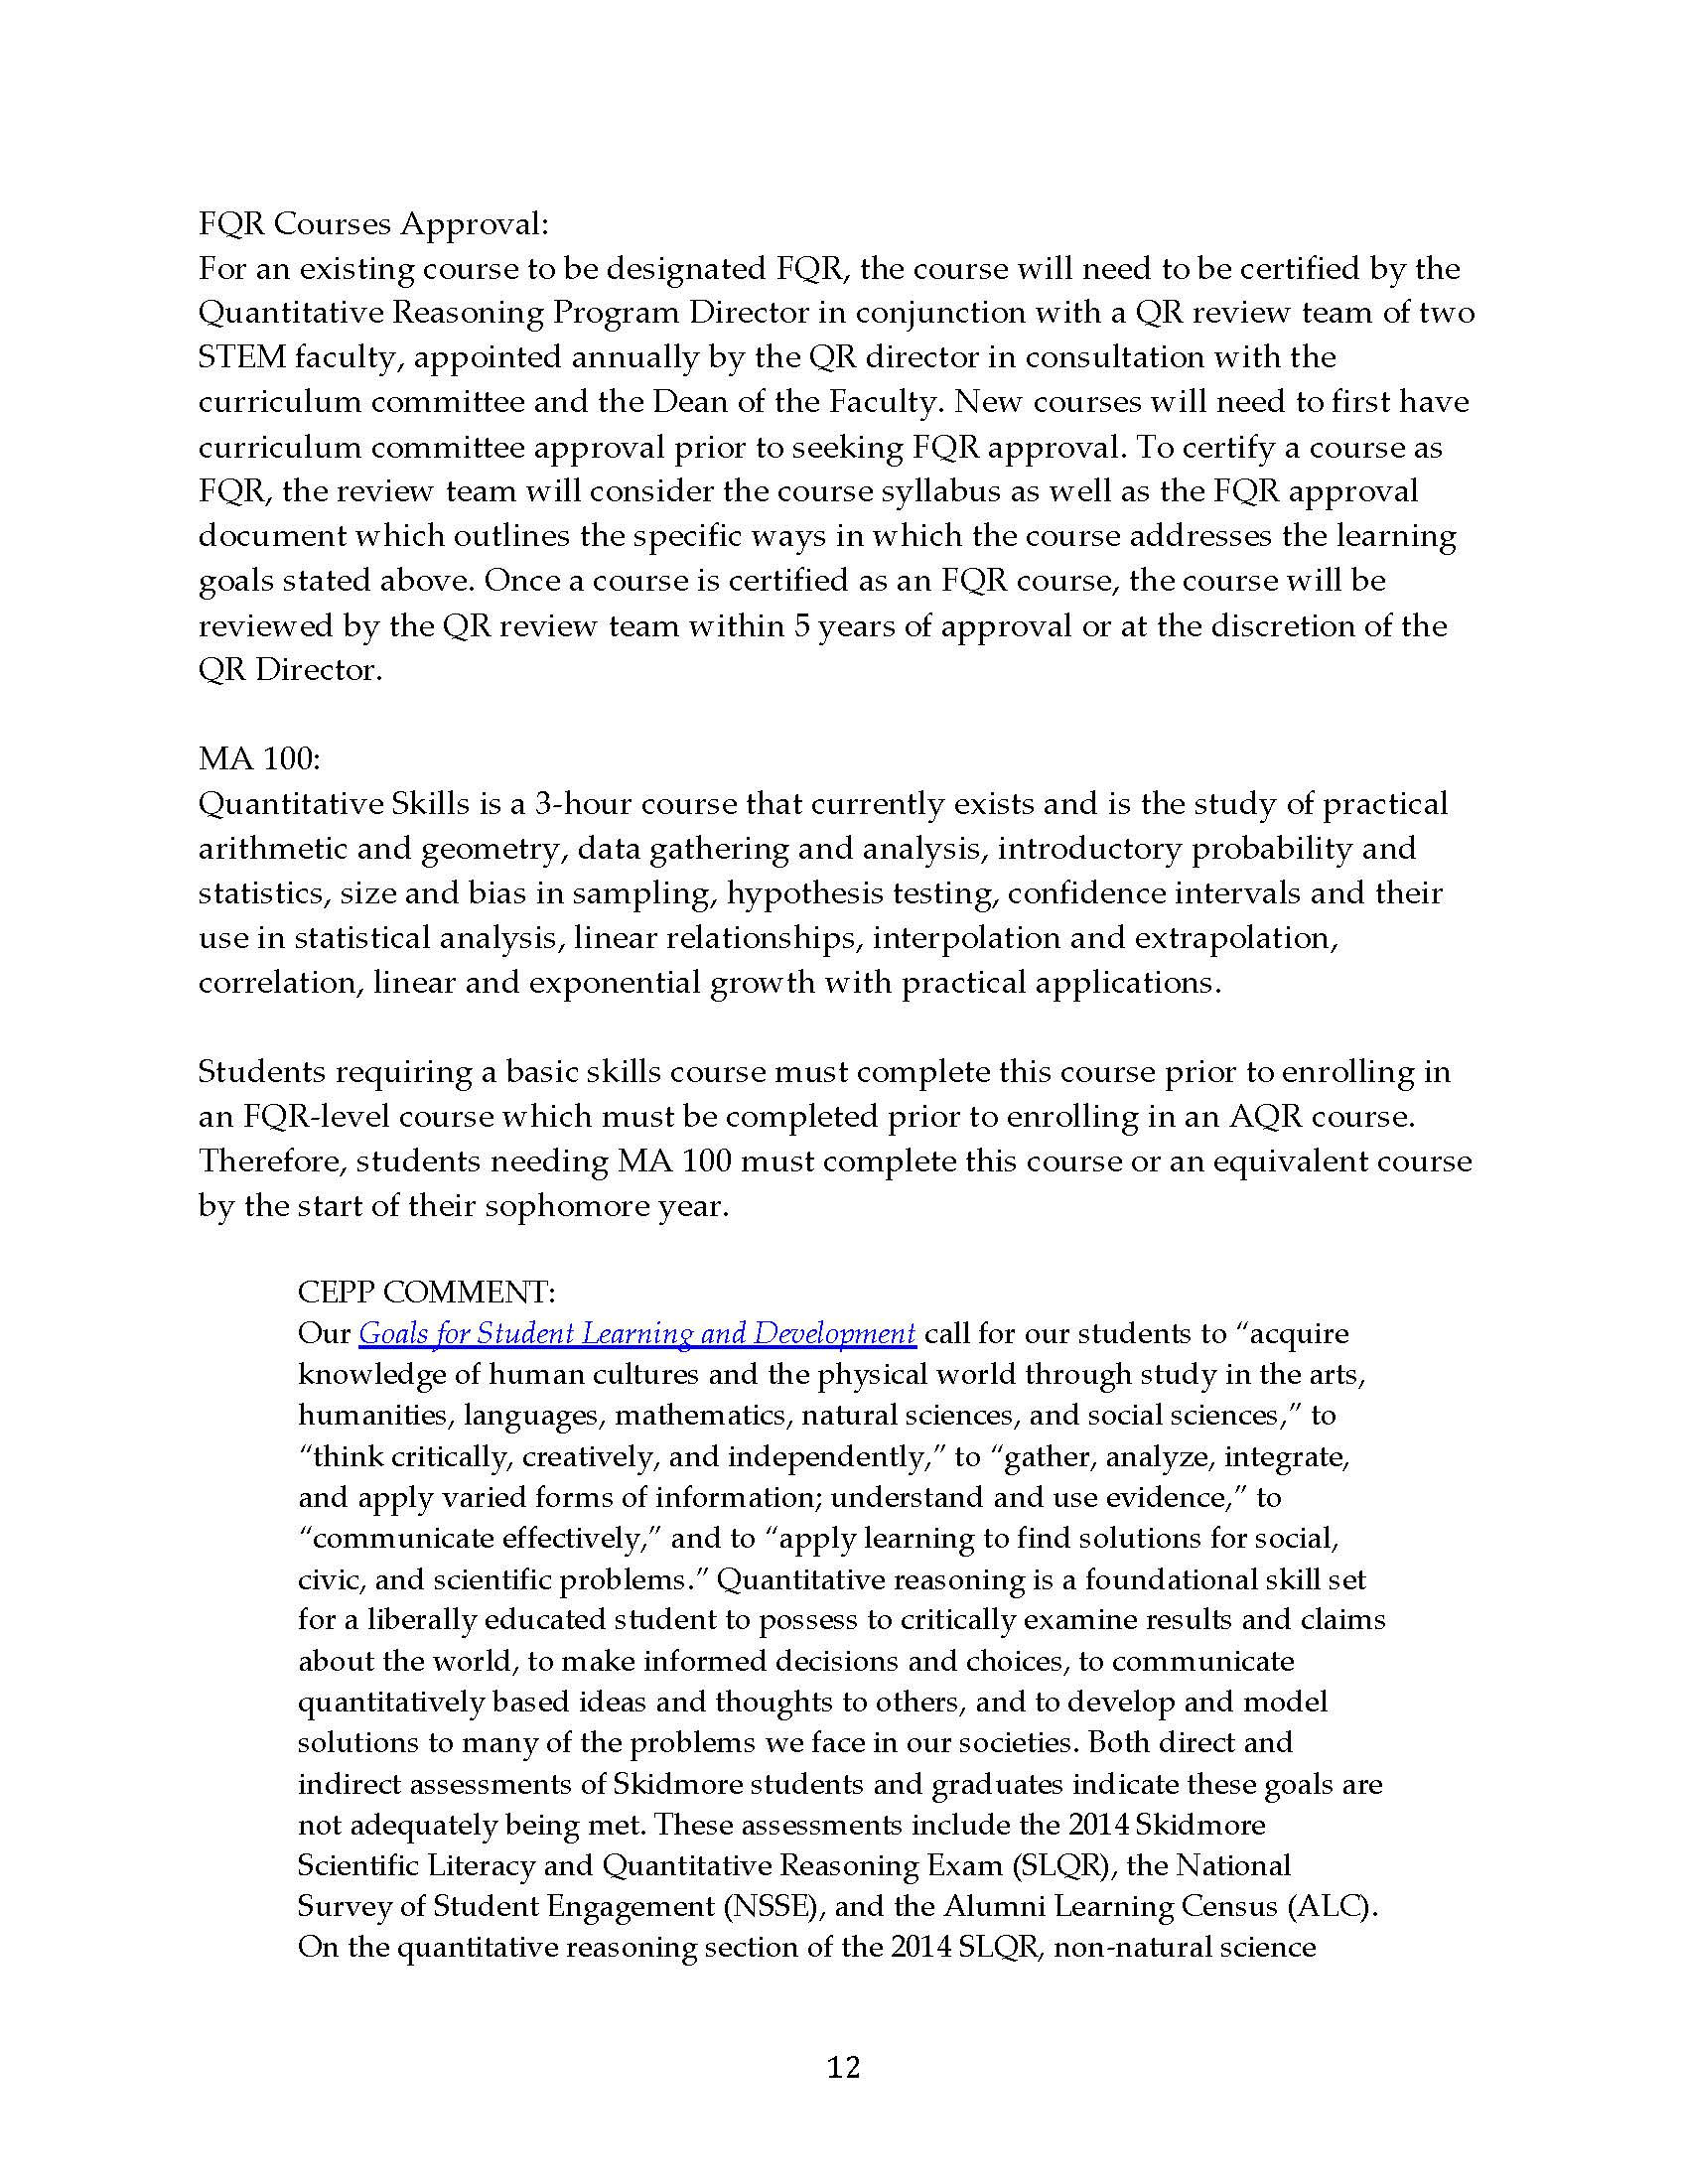 General Education Proposal February 28 2017_Page_12.jpg